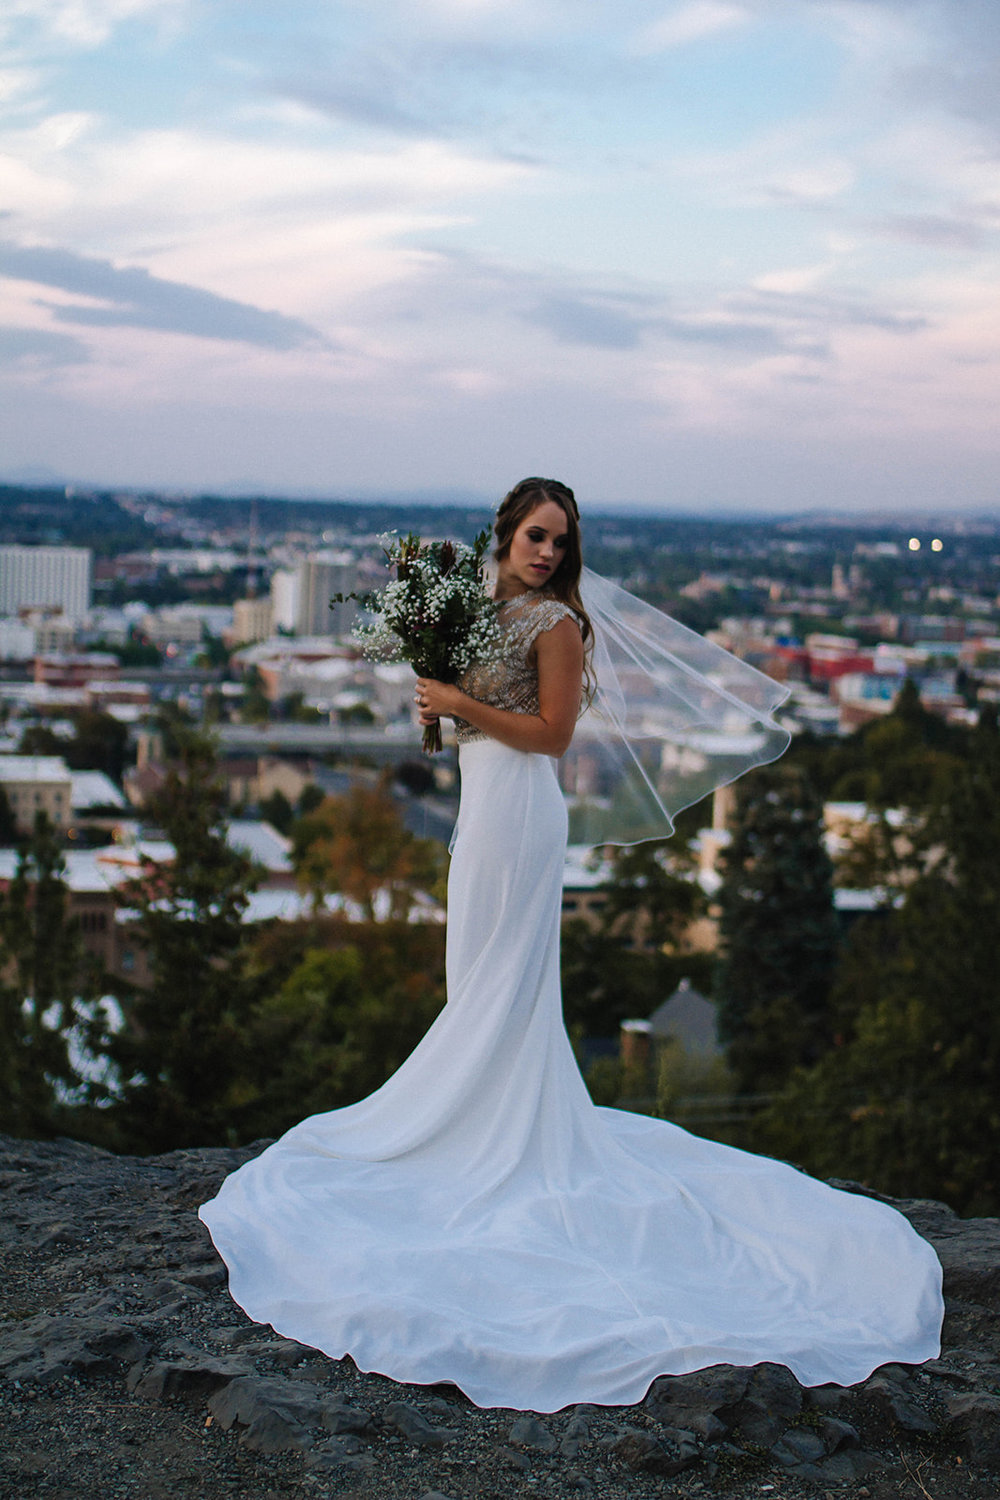 Spokane wedding dress image 16